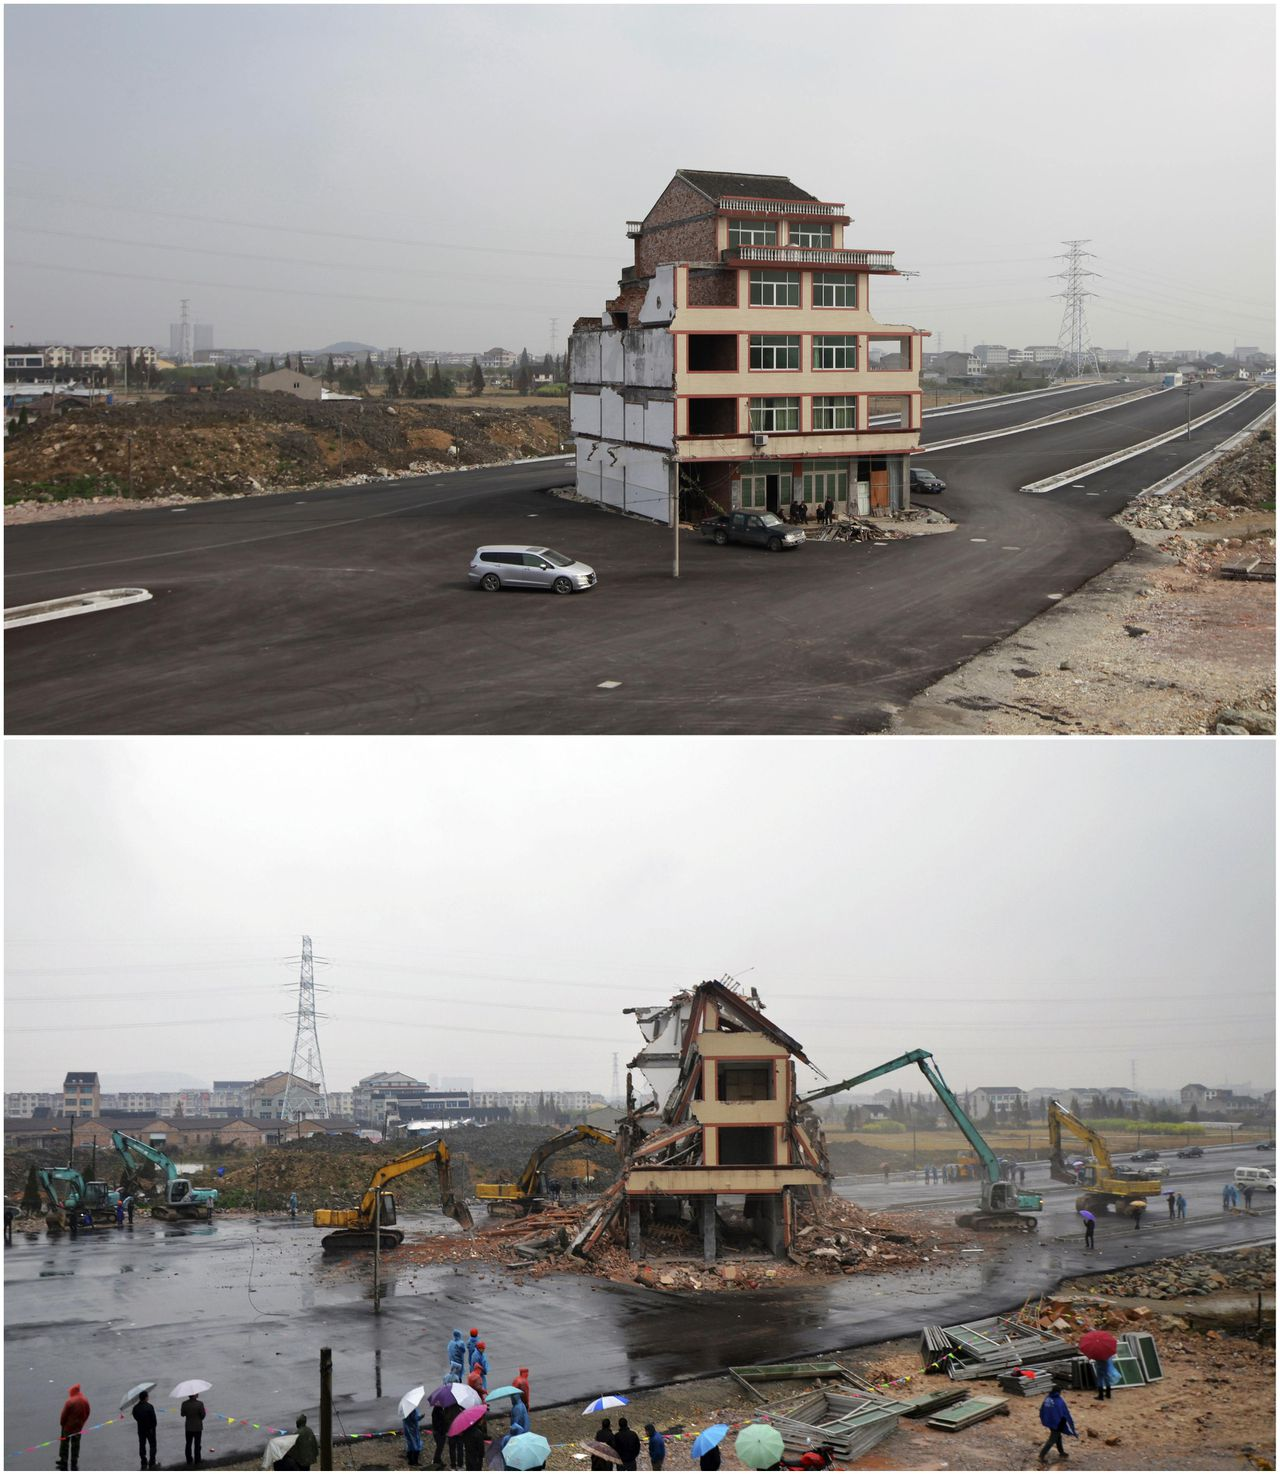 A house is seen on November 24, 2012 (top), and being demolished by excavators on December 1, 2012 (bottom), in the middle of a newly built road in Wenling, Zhejiang province, in this combination picture. Luo Baogen, the owner of the house, who earlier refused to sign an agreement to allow his house to be demolished, finally signed the agreement after discussions with the local government and his relatives. Luo and his wife had said that the compensation offered was not enough to cover rebuilding costs, according to local media. The demolition of the house started this Saturday, local media reported. Luo 's house was the only building left standing on the road, which was paved through the village. REUTERS/Aly Song and China Daily (CHINA - Tags: BUSINESS CONSTRUCTION SOCIETY TPX IMAGES OF THE DAY) CHINA OUT. NO COMMERCIAL OR EDITORIAL SALES IN CHINA